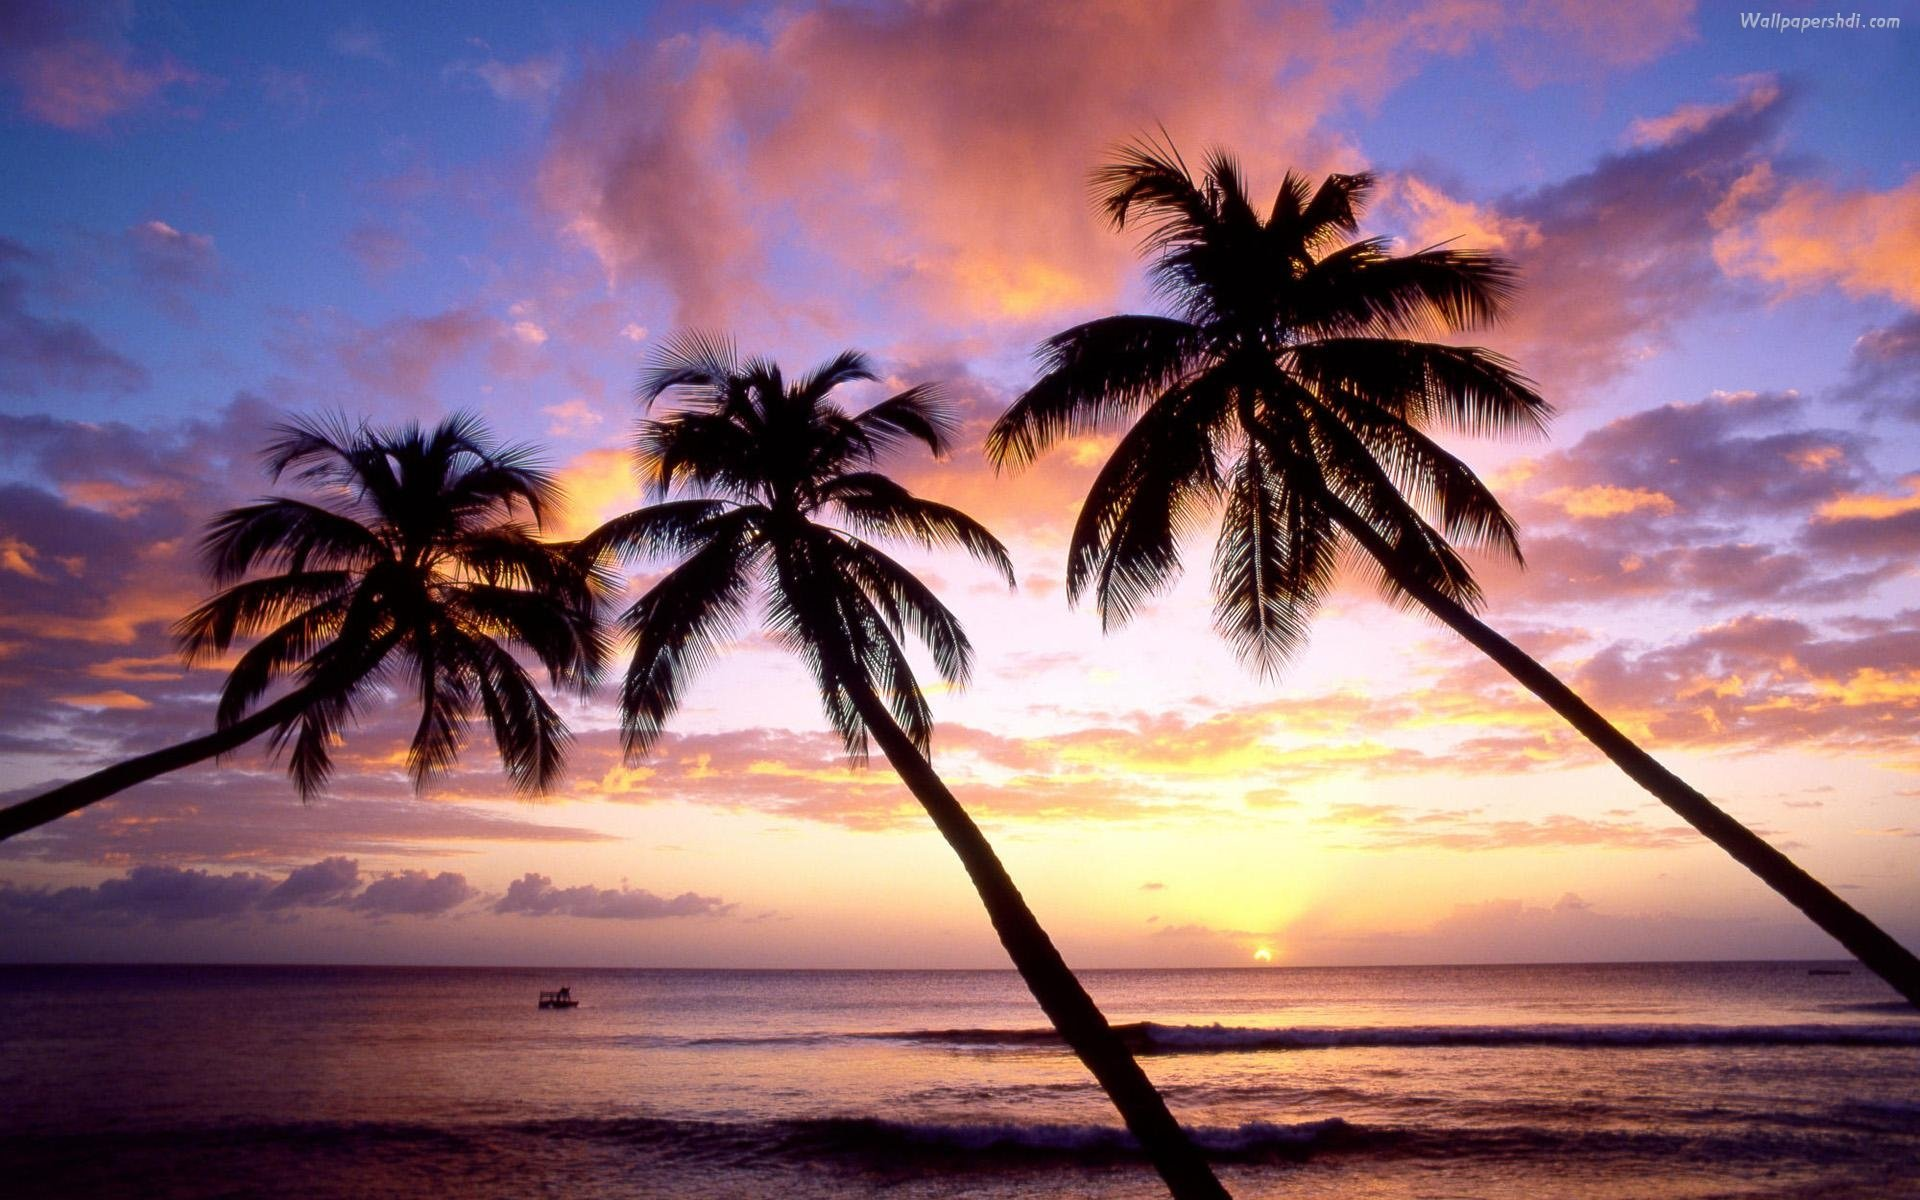 palm trees sunset images palm trees sunset pictures palm trees 1920x1200